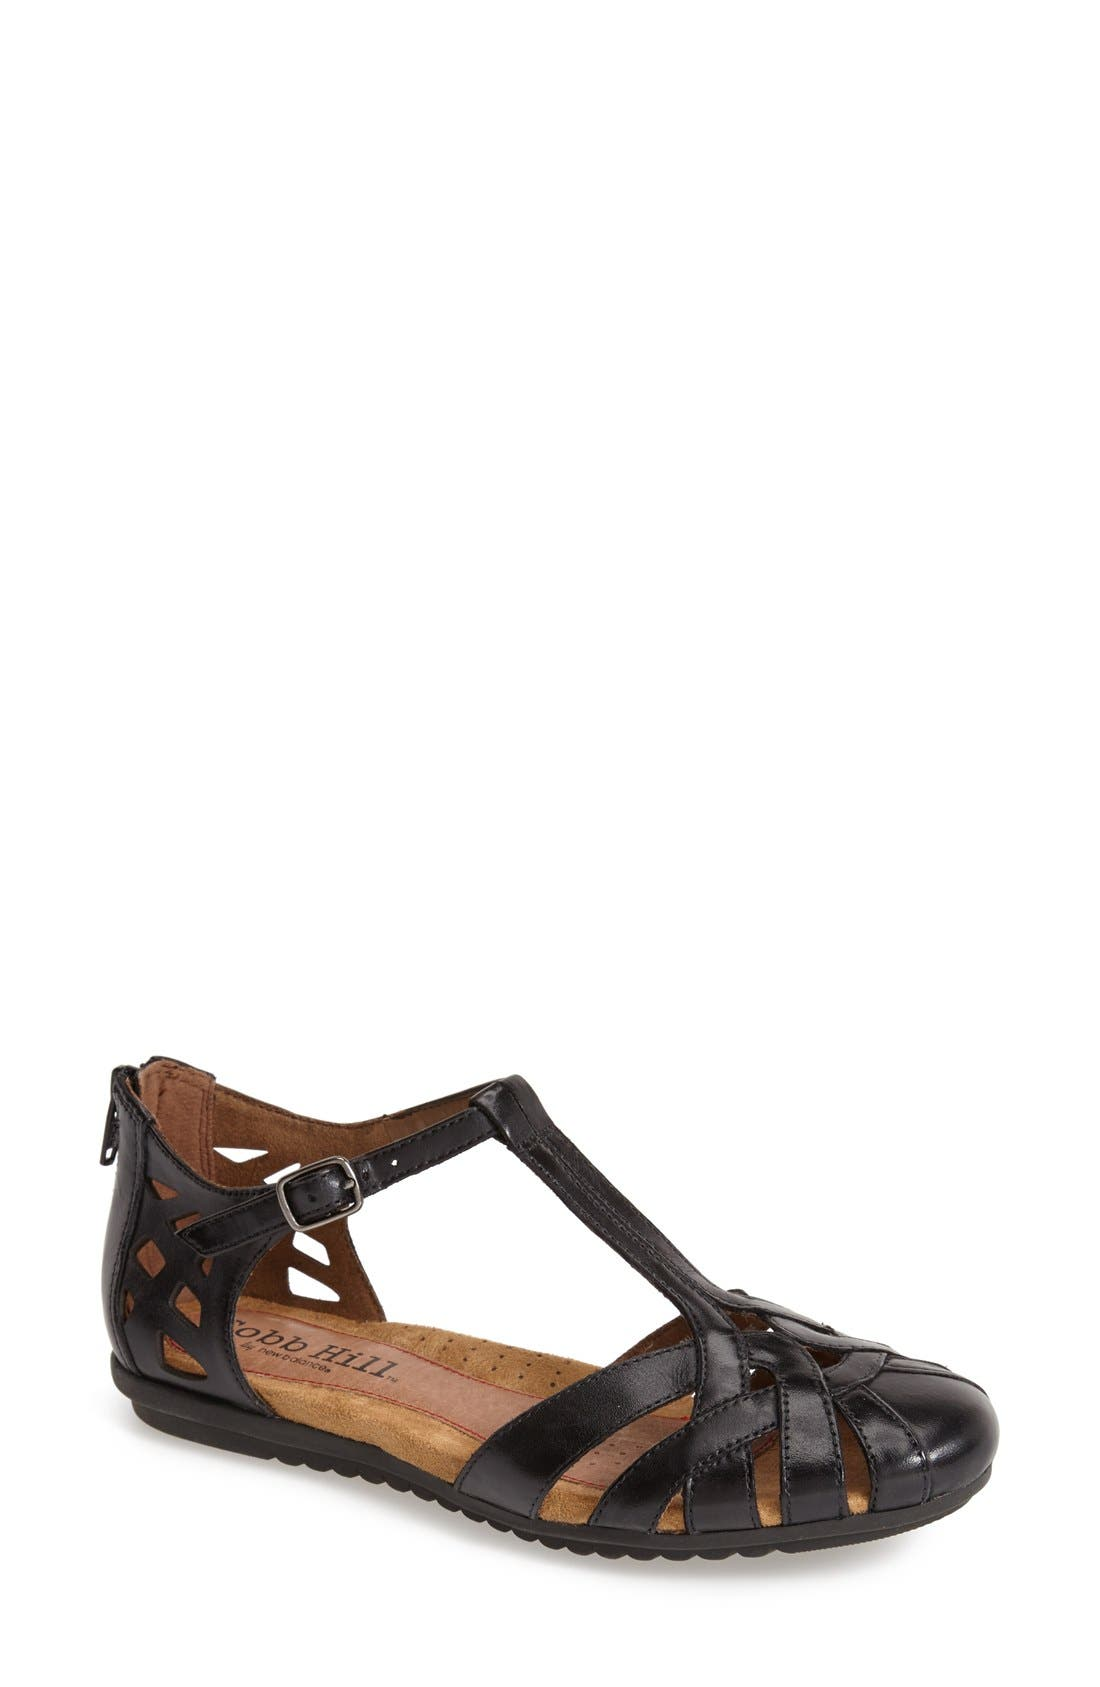 Rockport Cobb Hill 'Ireland' Leather Sandal (Women)